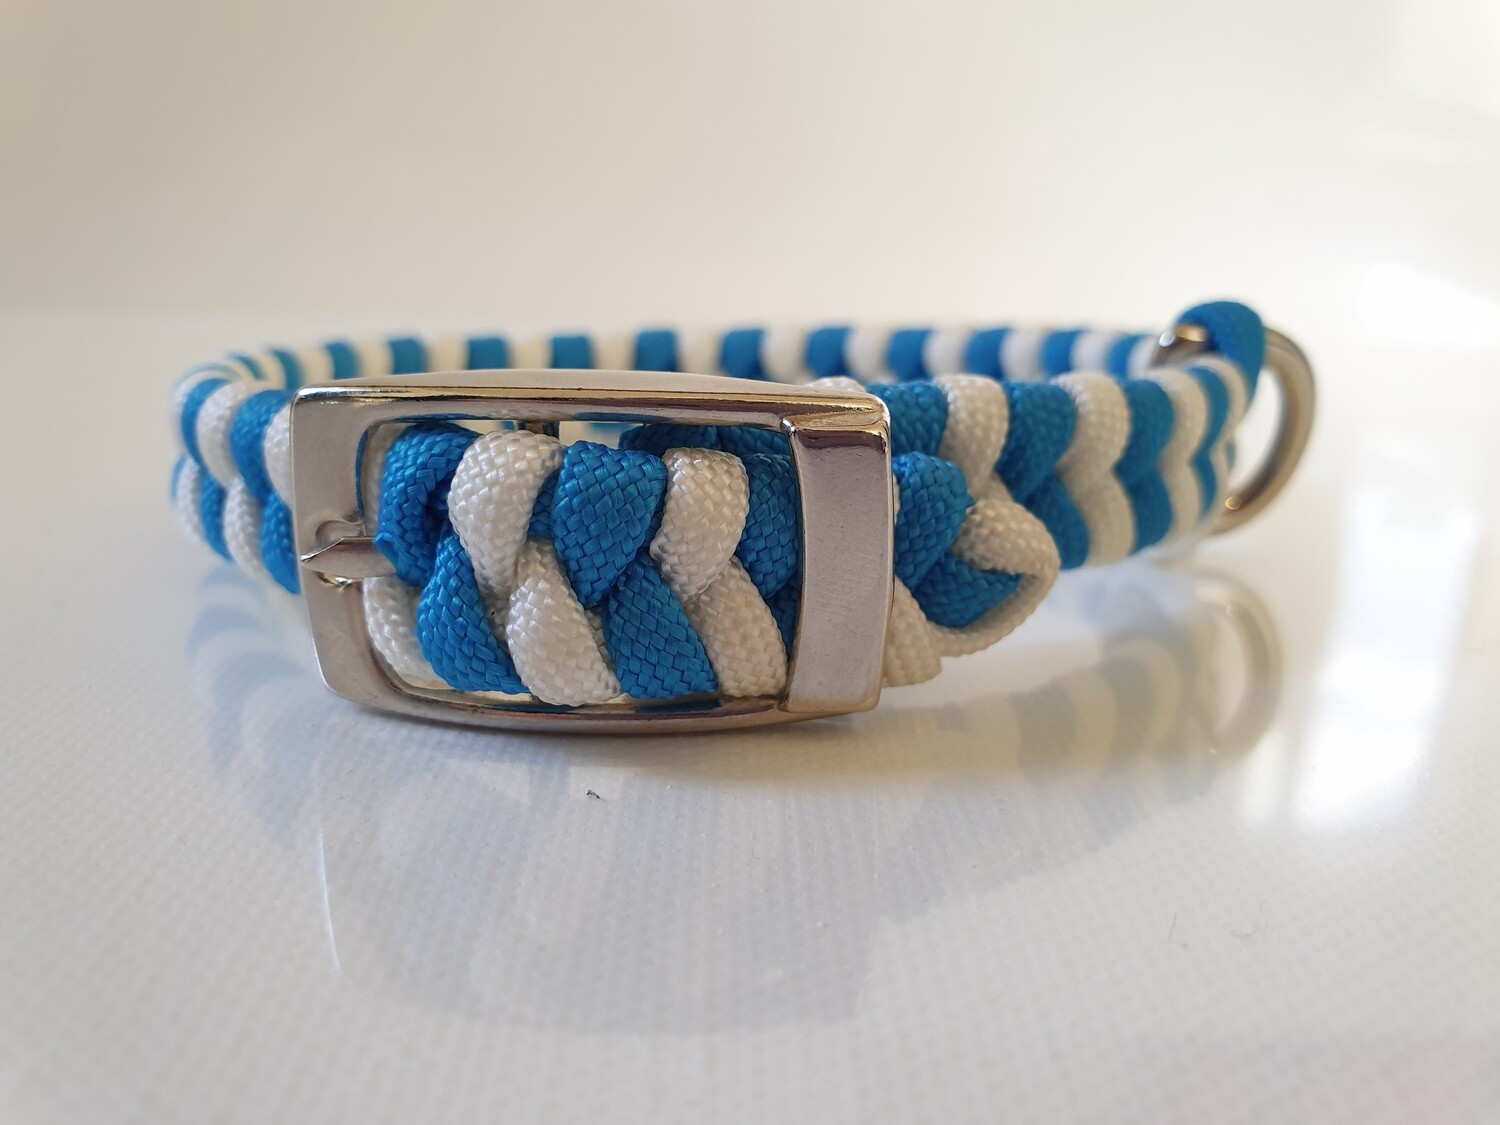 Flat Braid Extra Small Blue/White Dog Collar